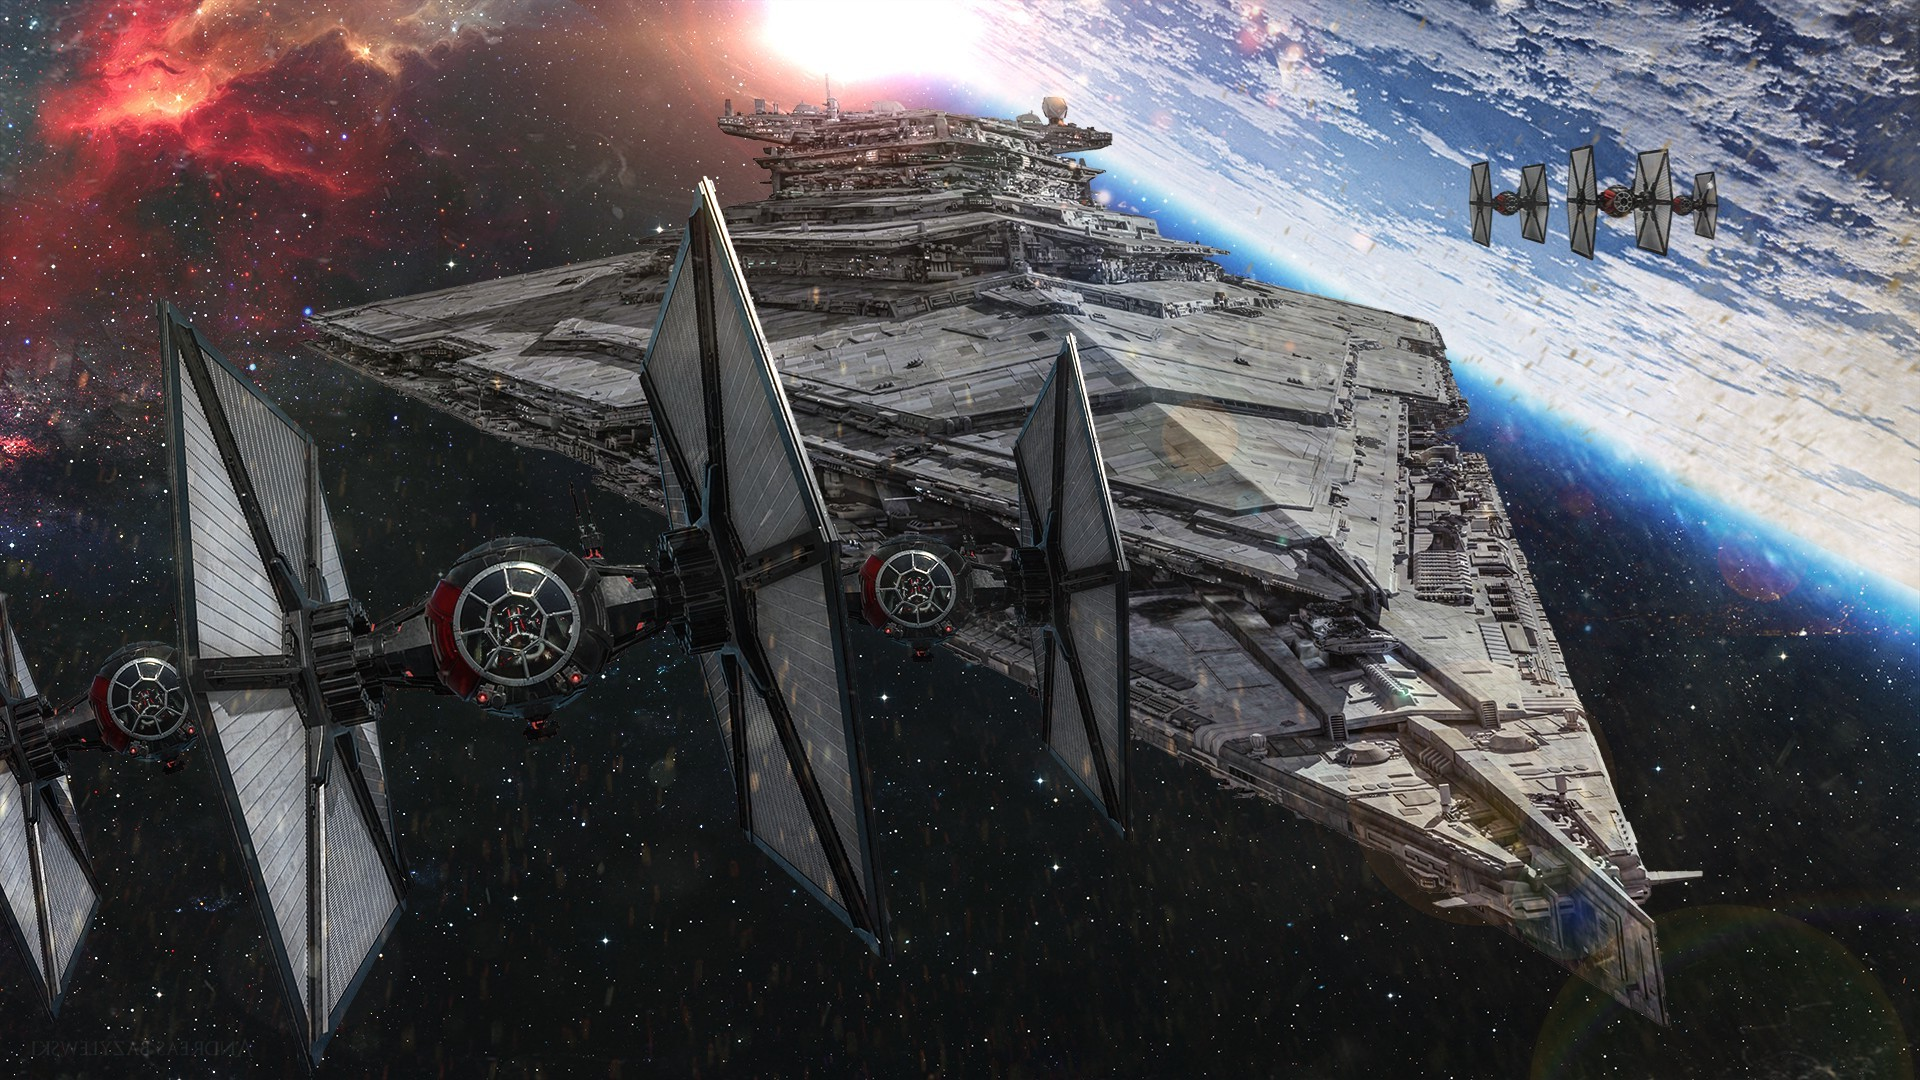 X Wing Fighter Iphone Wallpaper Star Wars Episode Vii The Force Awakens Star Wars